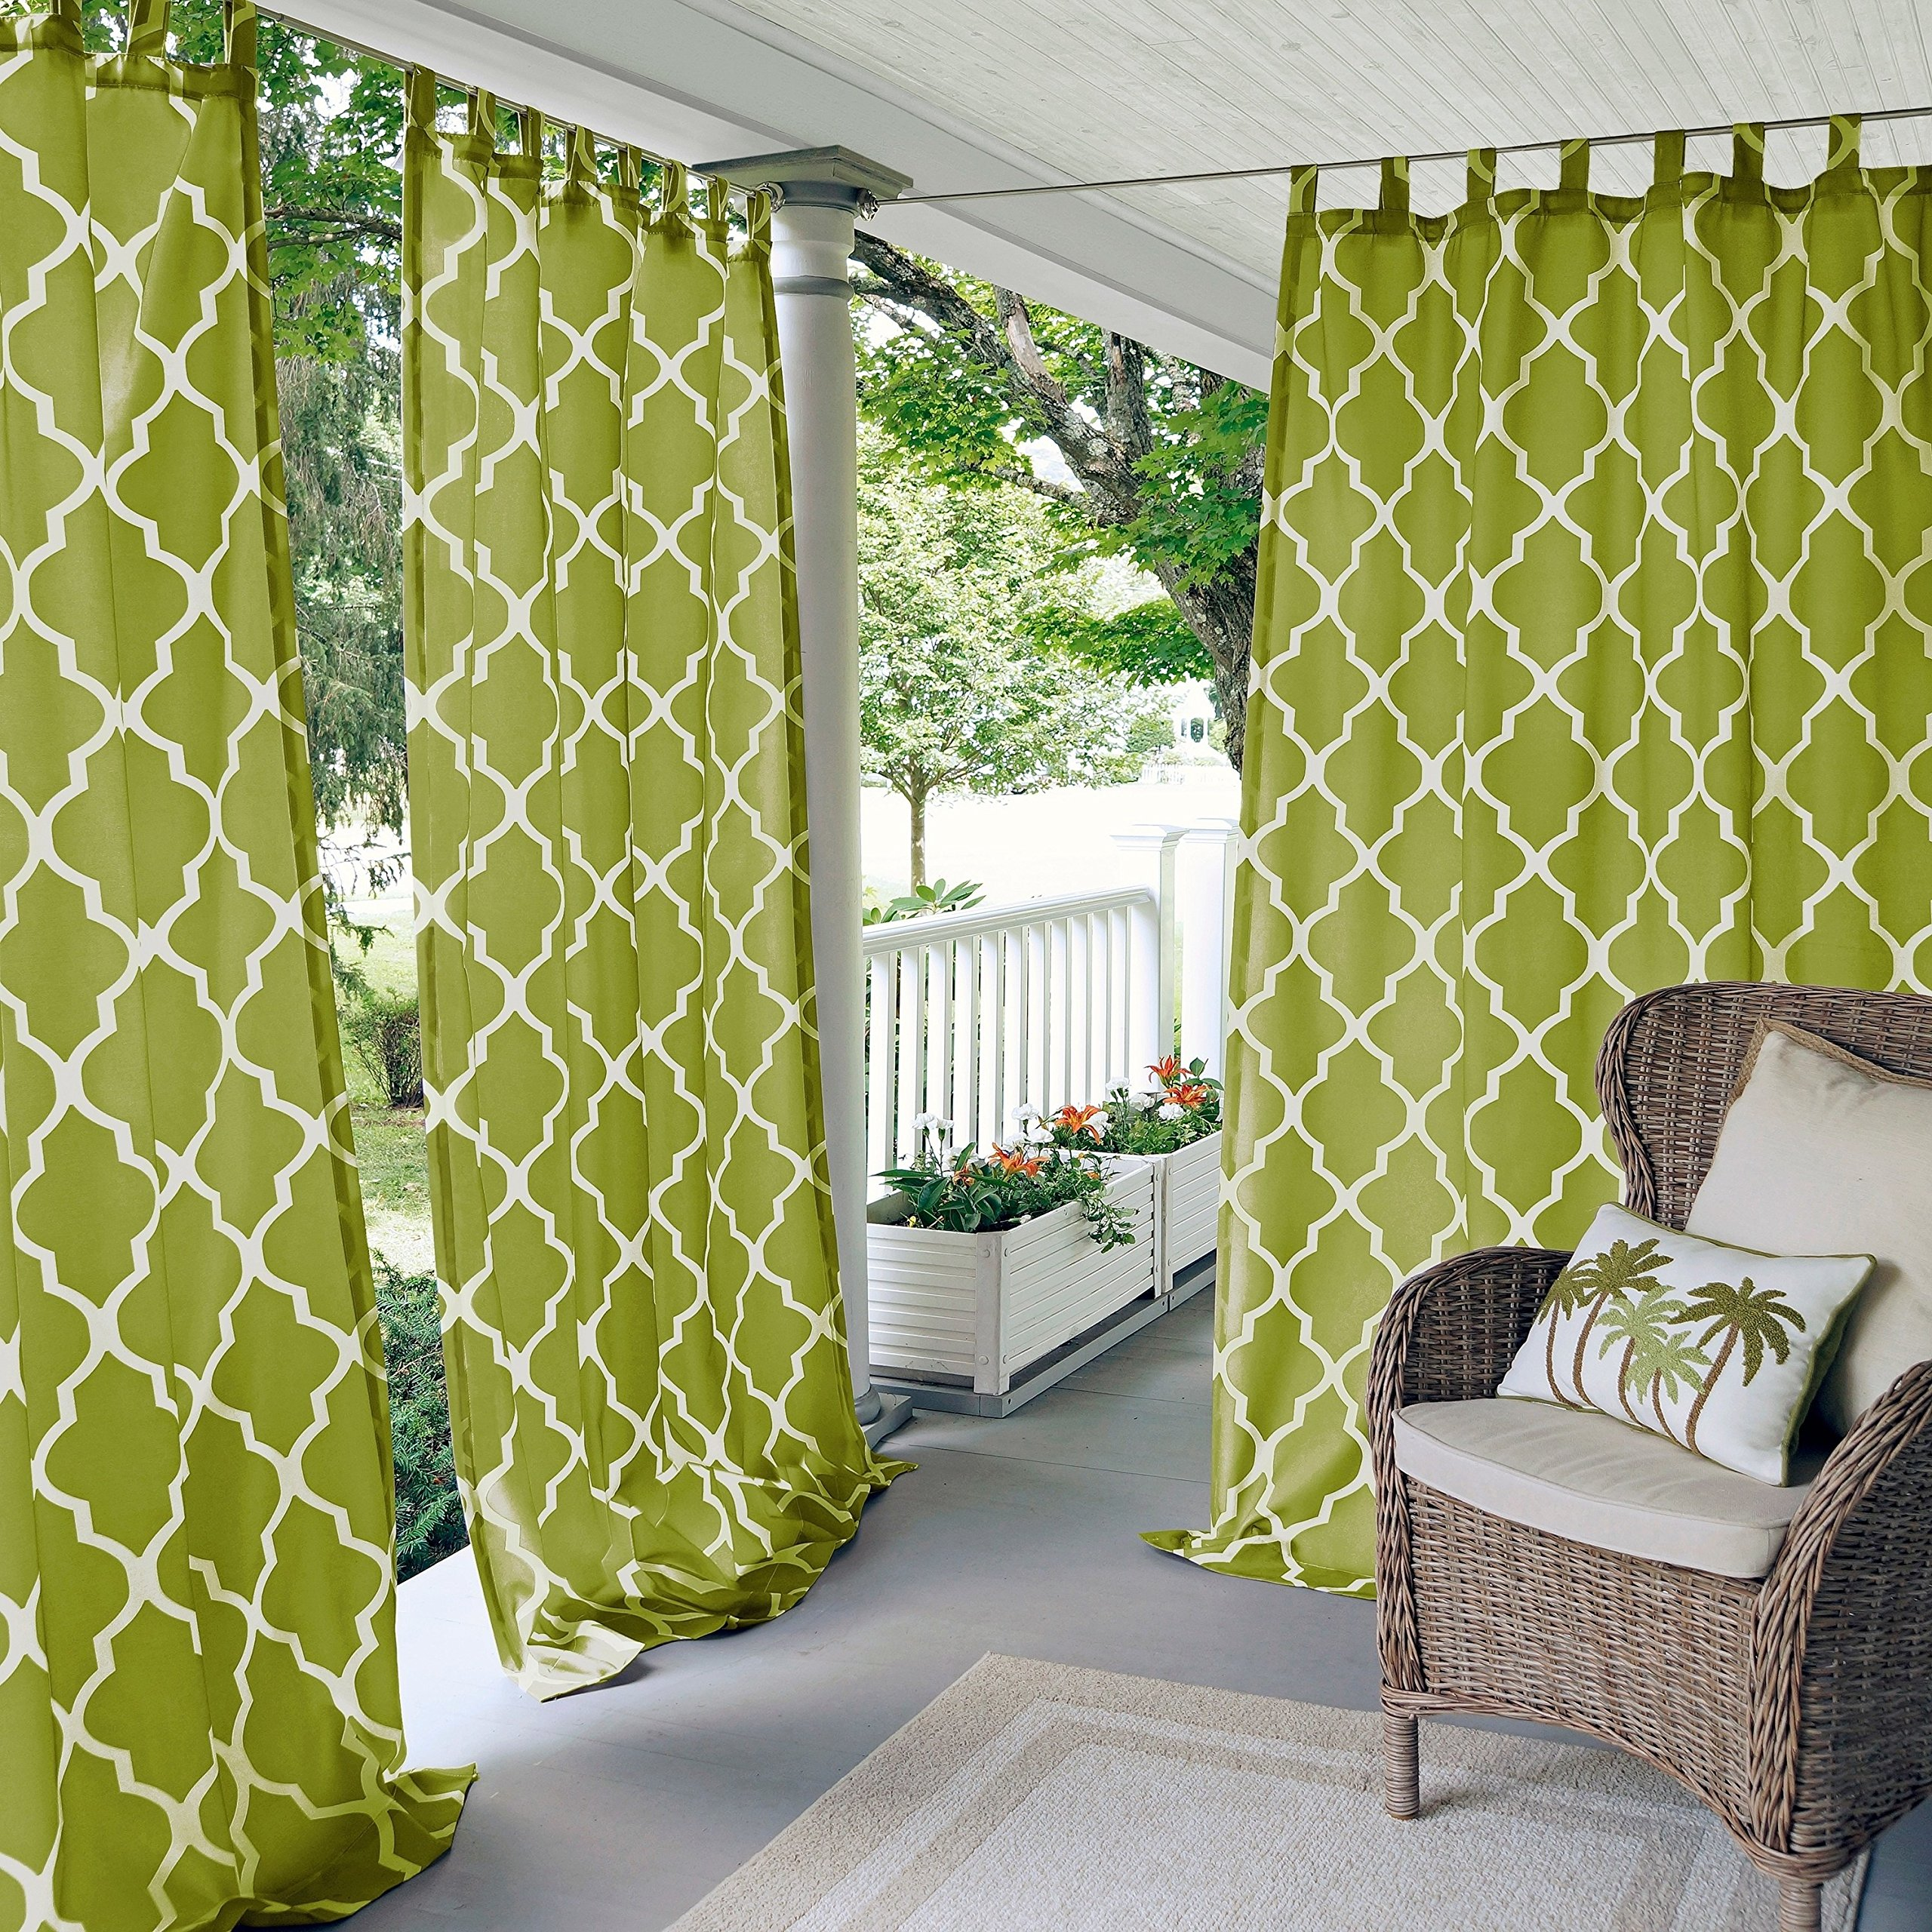 N&T 1 Piece Grass Trellis Gazebo Curtain Panel 84 Inch, Green Moroccan Print Outdoor Curtain Water Resistant for Patio Porch, Light Filtering Indoor/Outdoor Curtain Pergola Sunroom Tab Top, Polyester